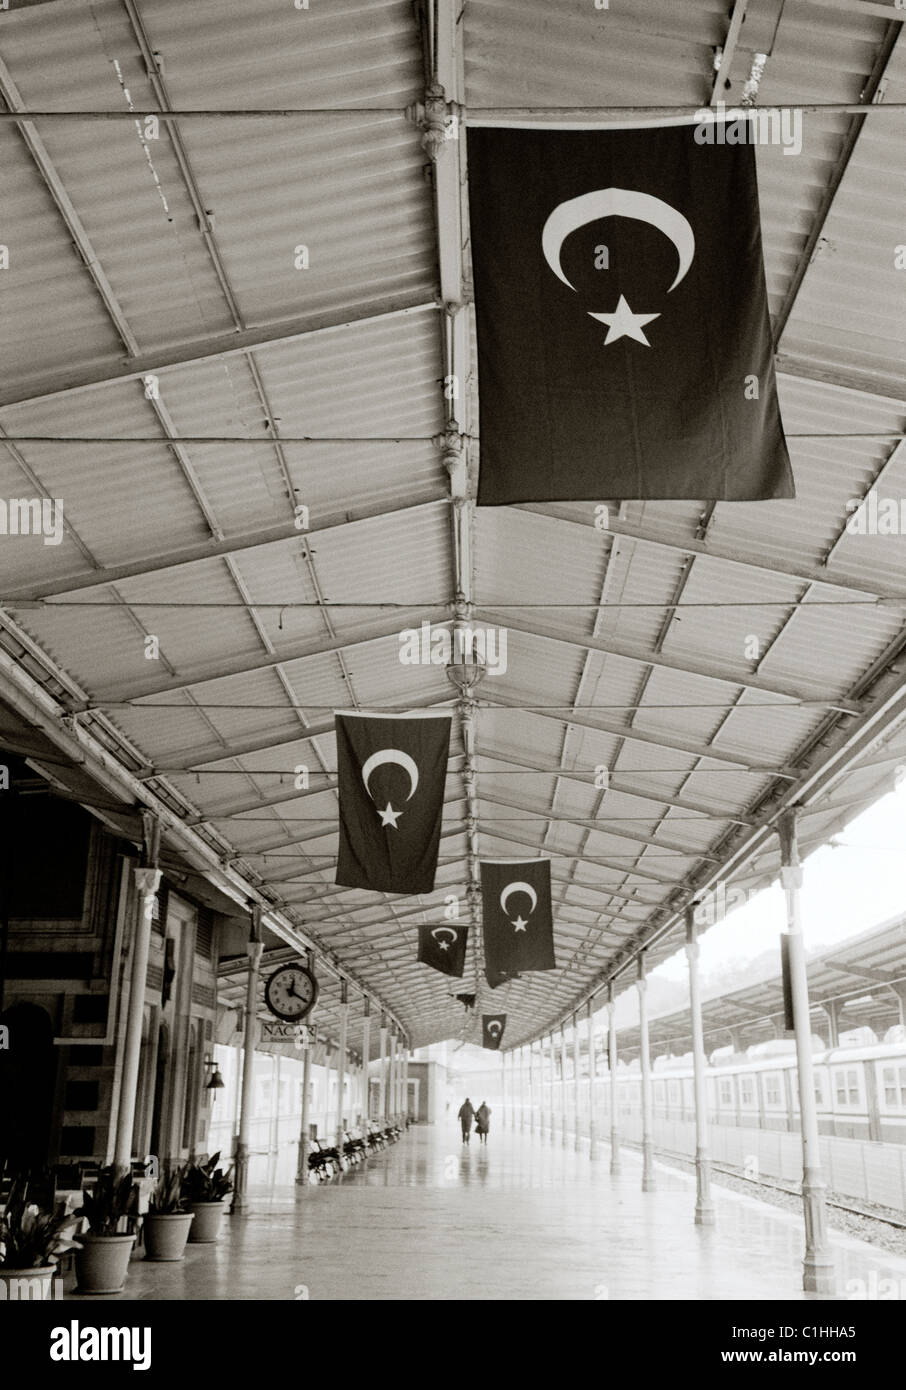 Sirkeci Train Railway Station in Istanbul in Turkey in Middle East Asia. Orient Express History Historical Turkish - Stock Image